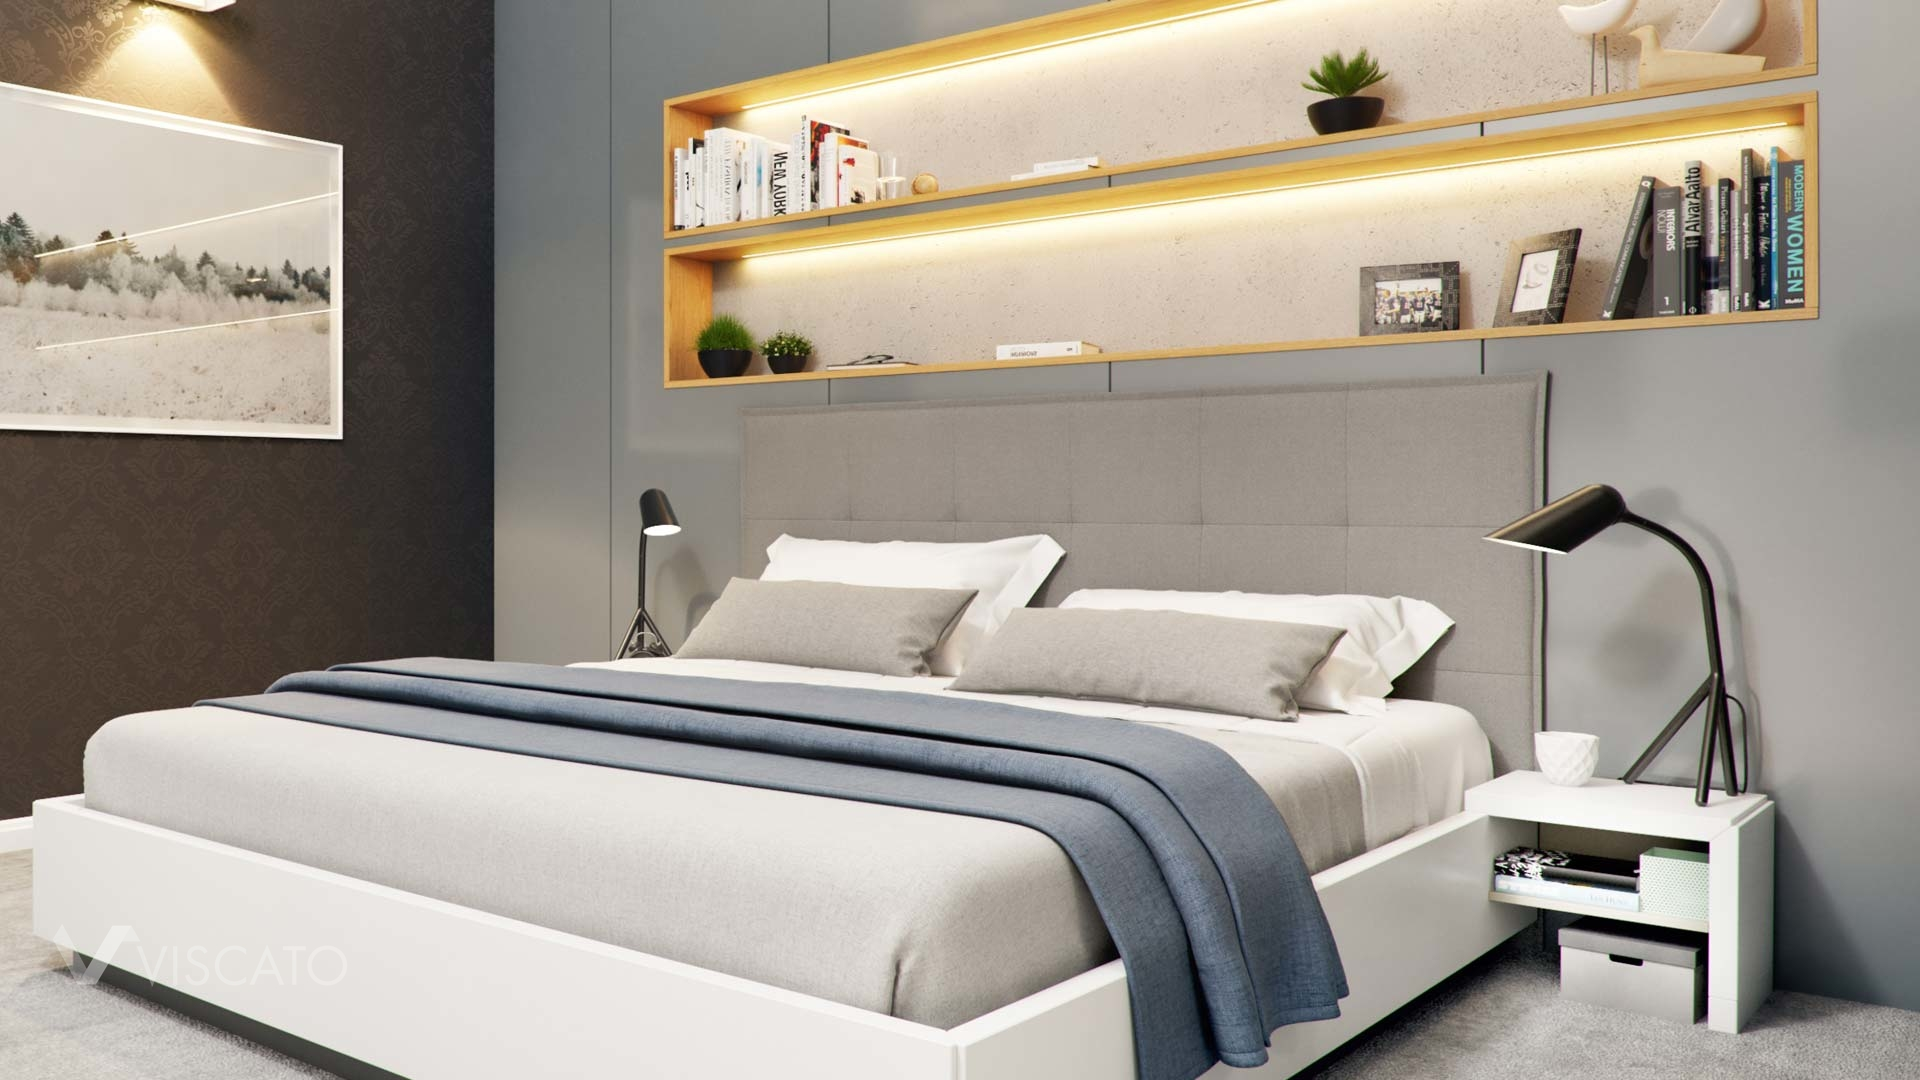 master bedroom in the shaeds of grey- Viscato interior visualization